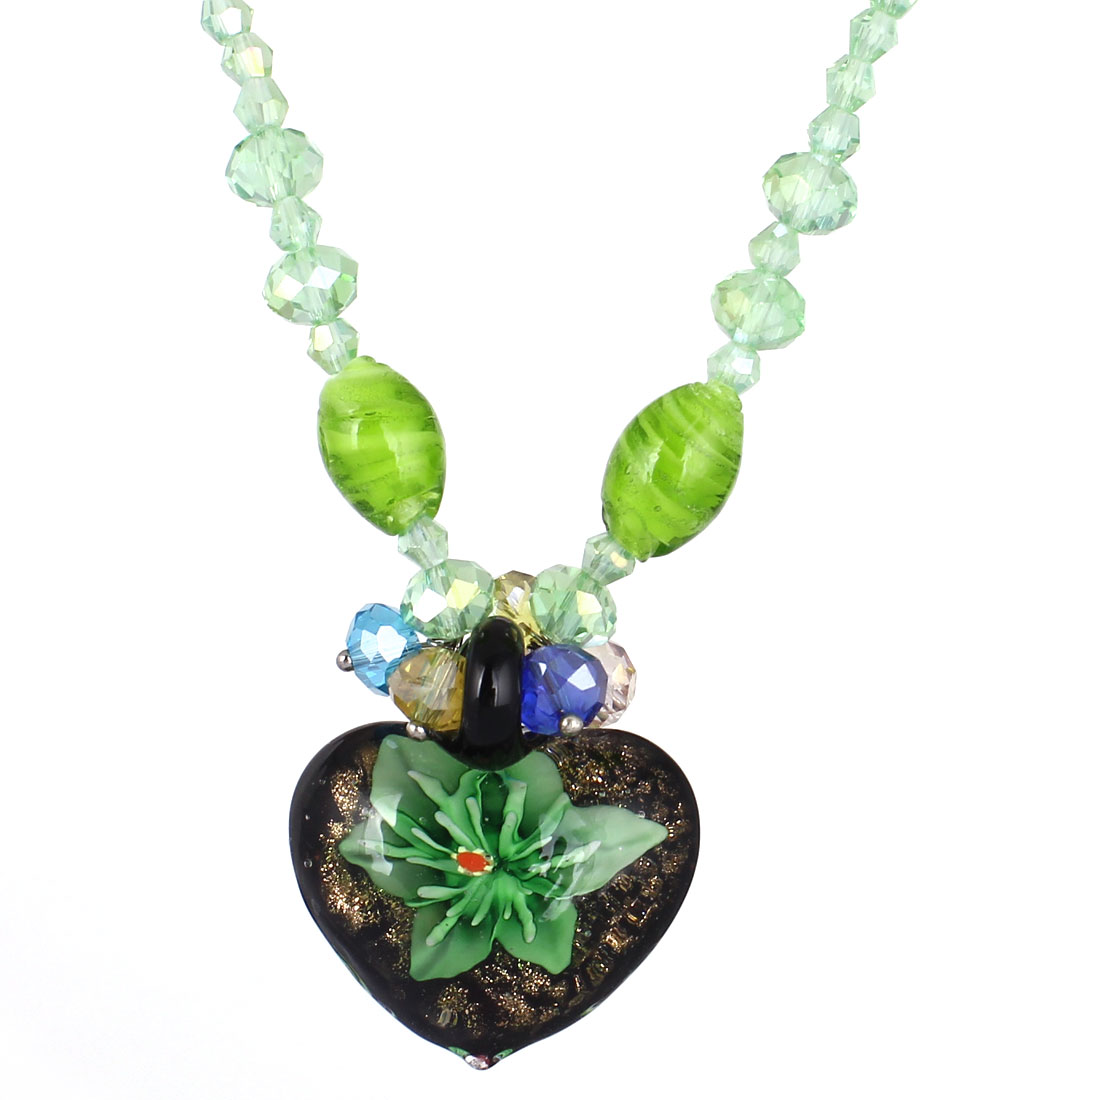 Green Rhinestone Inlaid Neck String Black Heart Booming Flower Press Glass Pendant Necklace for Lady